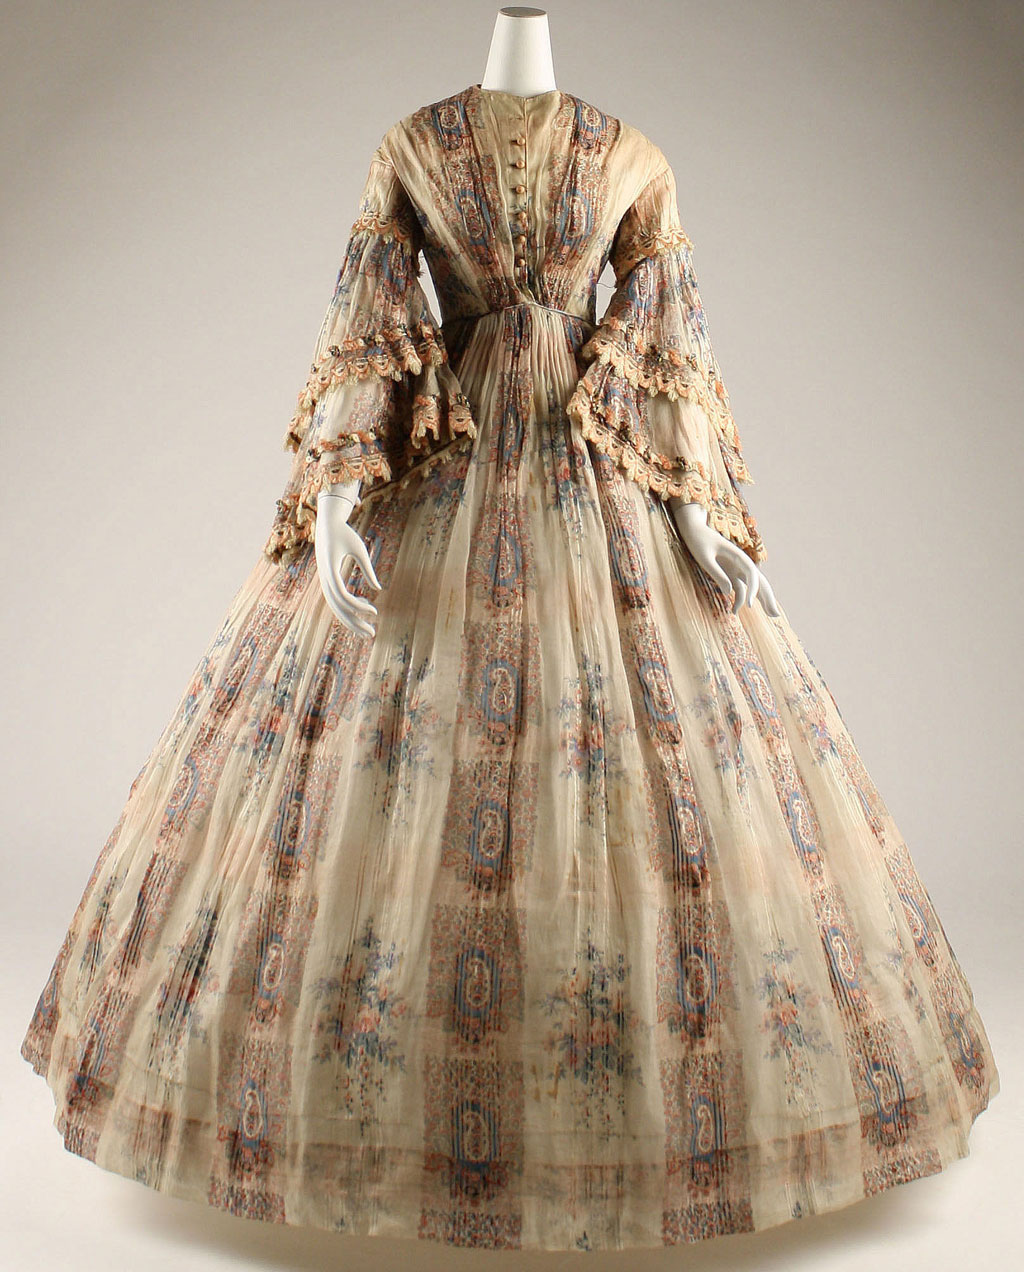 highlights from the met's collection (3)